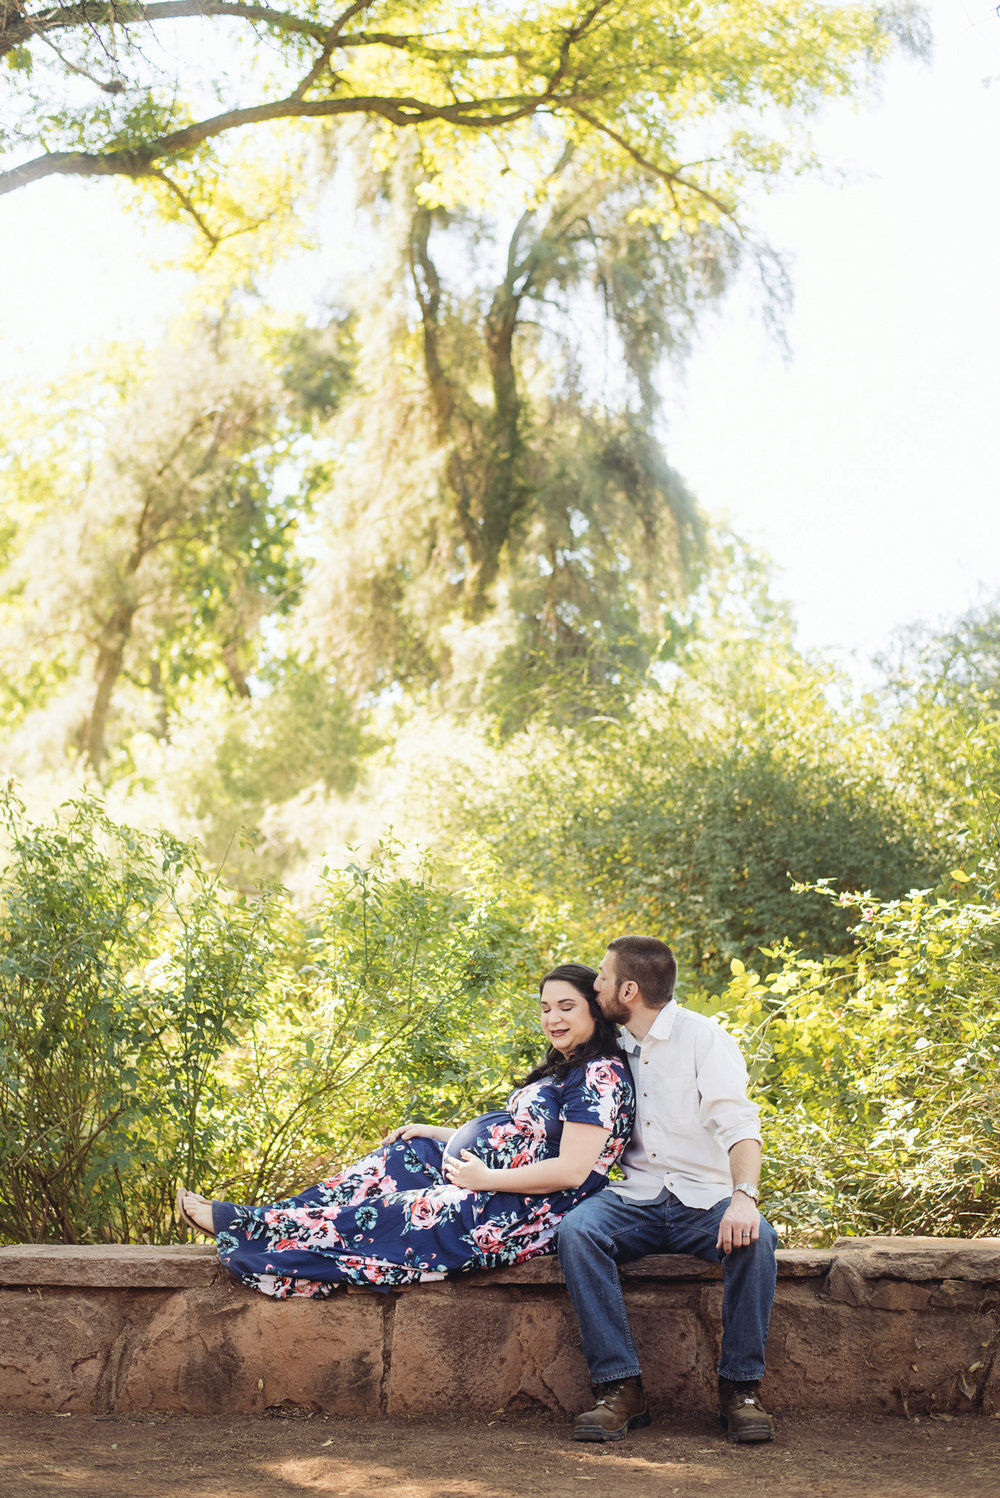 boyce-thompson-arboretum-maternity-photos-elemental-fotos-andrew-ybanez-12.jpg